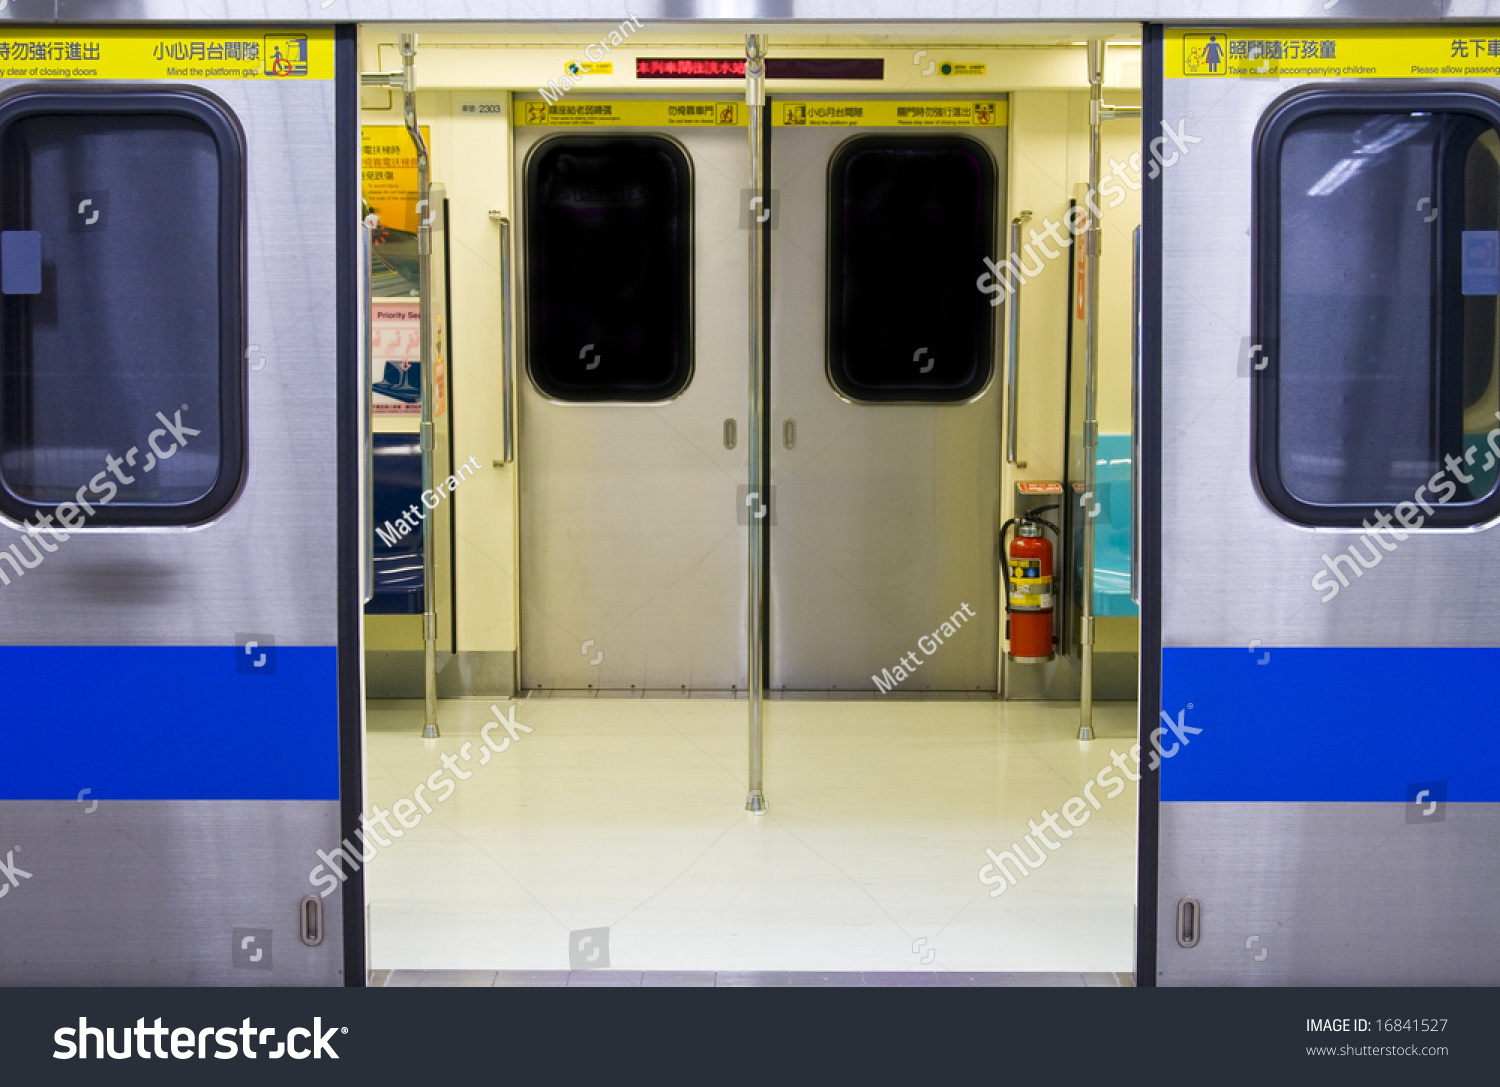 Subway carriage empty with doors open in china stock photo 16841527 shutterstock - Carrage metro ...